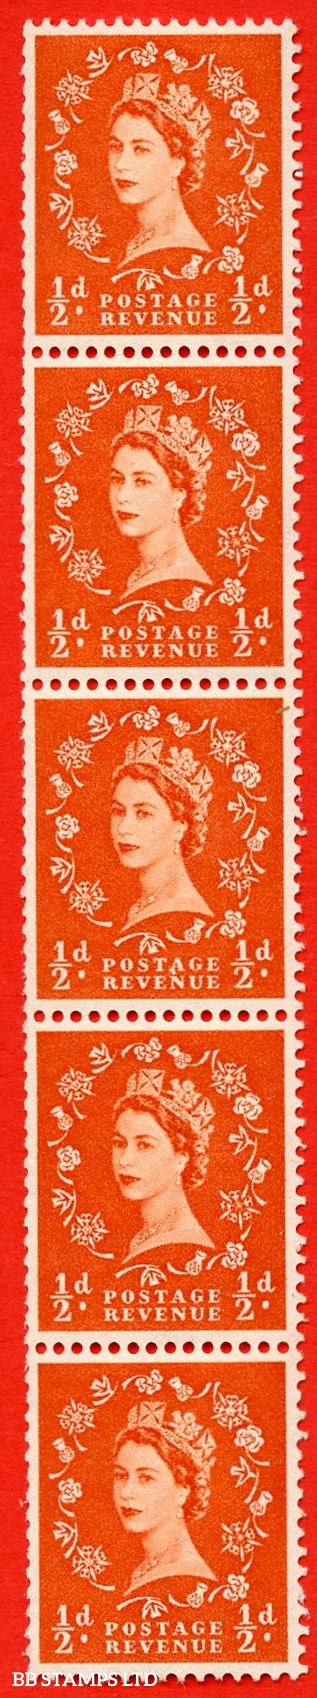 "SG. 515. S1c. ½d Orange-Red. A superb UNMOUNTED MINT. Vertical coil of 5.  Variety ""A"" flaw (Vert.coil,Roll 3)."